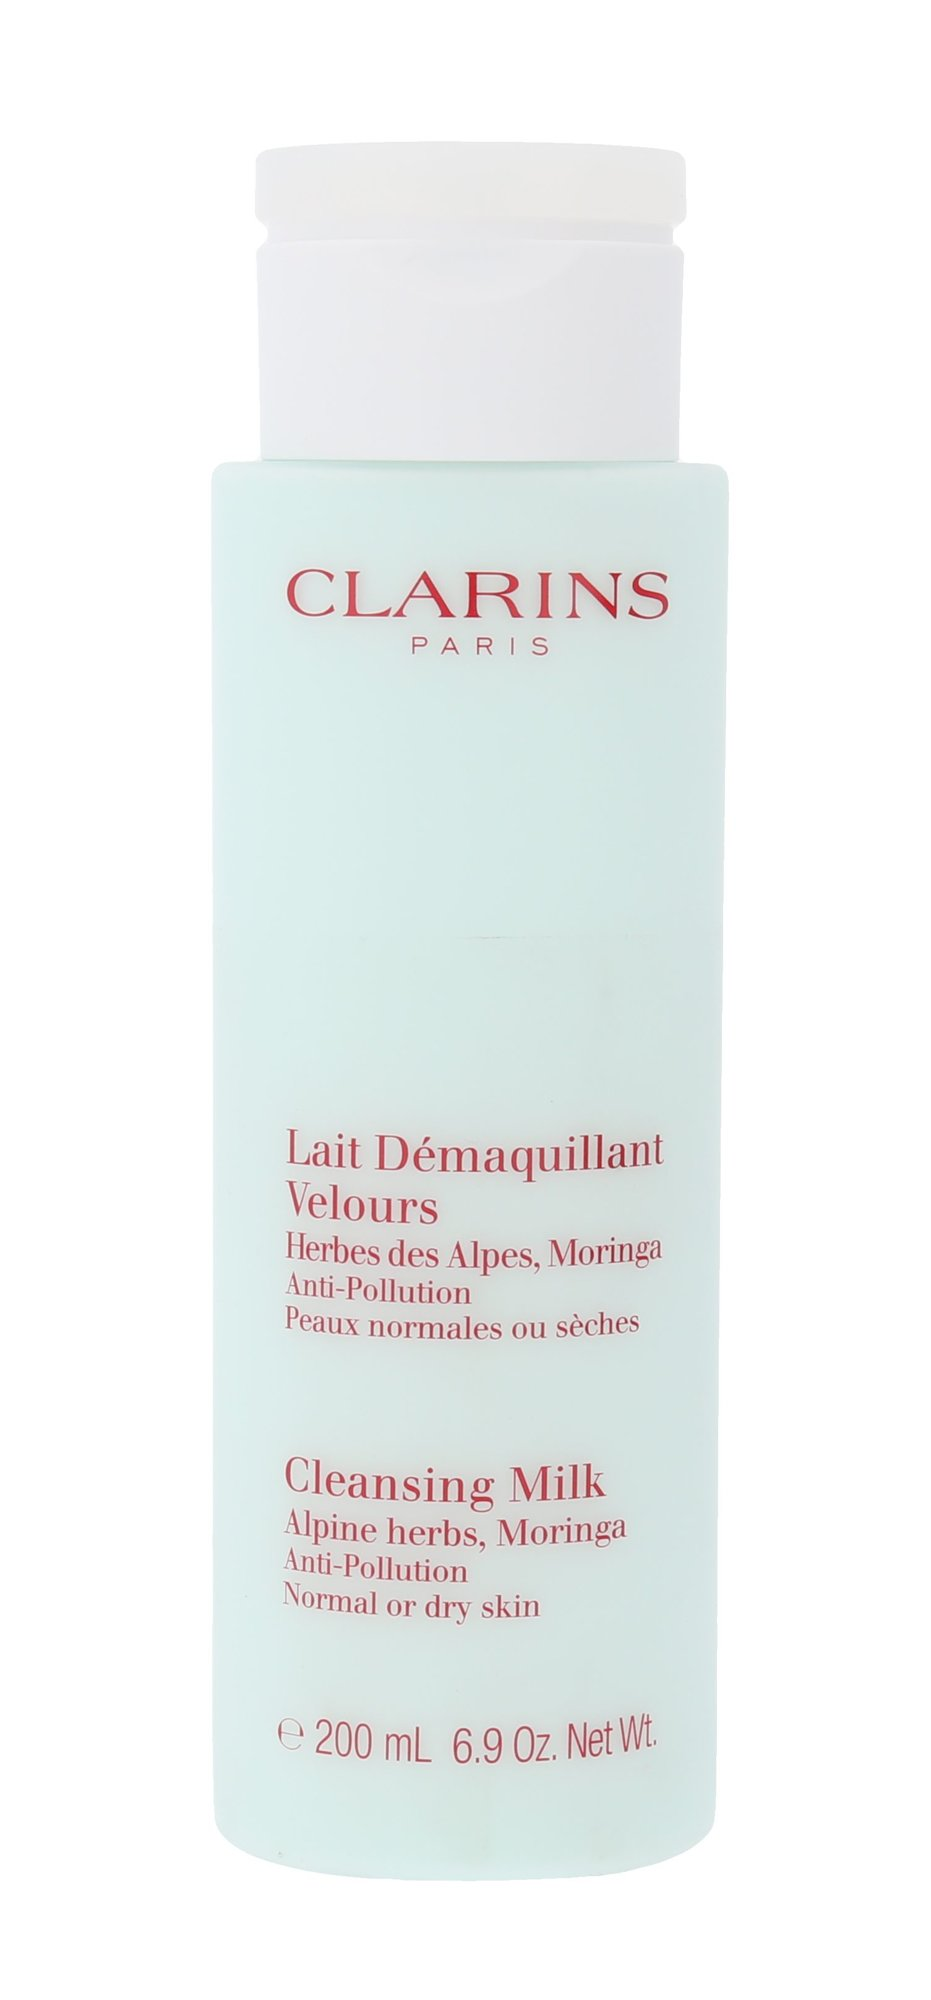 Clarins Cleansing Milk Cosmetic 200ml